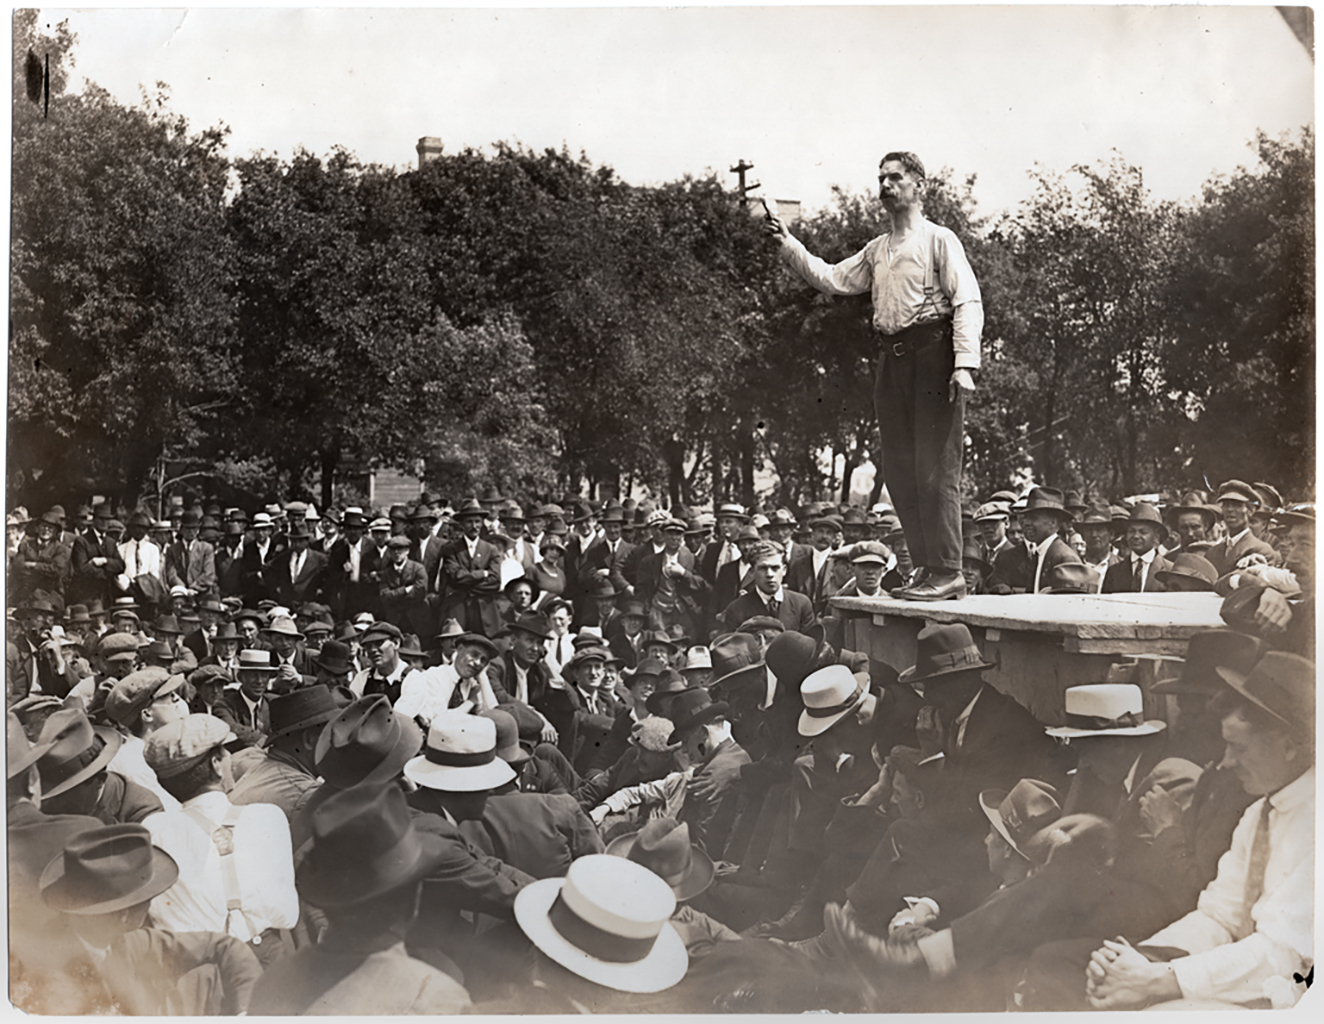 Roger E. Bray, a socialist who became a strike leader, speaks to a crowd at Victoria Park on June 13, 1919. (L.B. Foote collection/Archives of Manitoba)